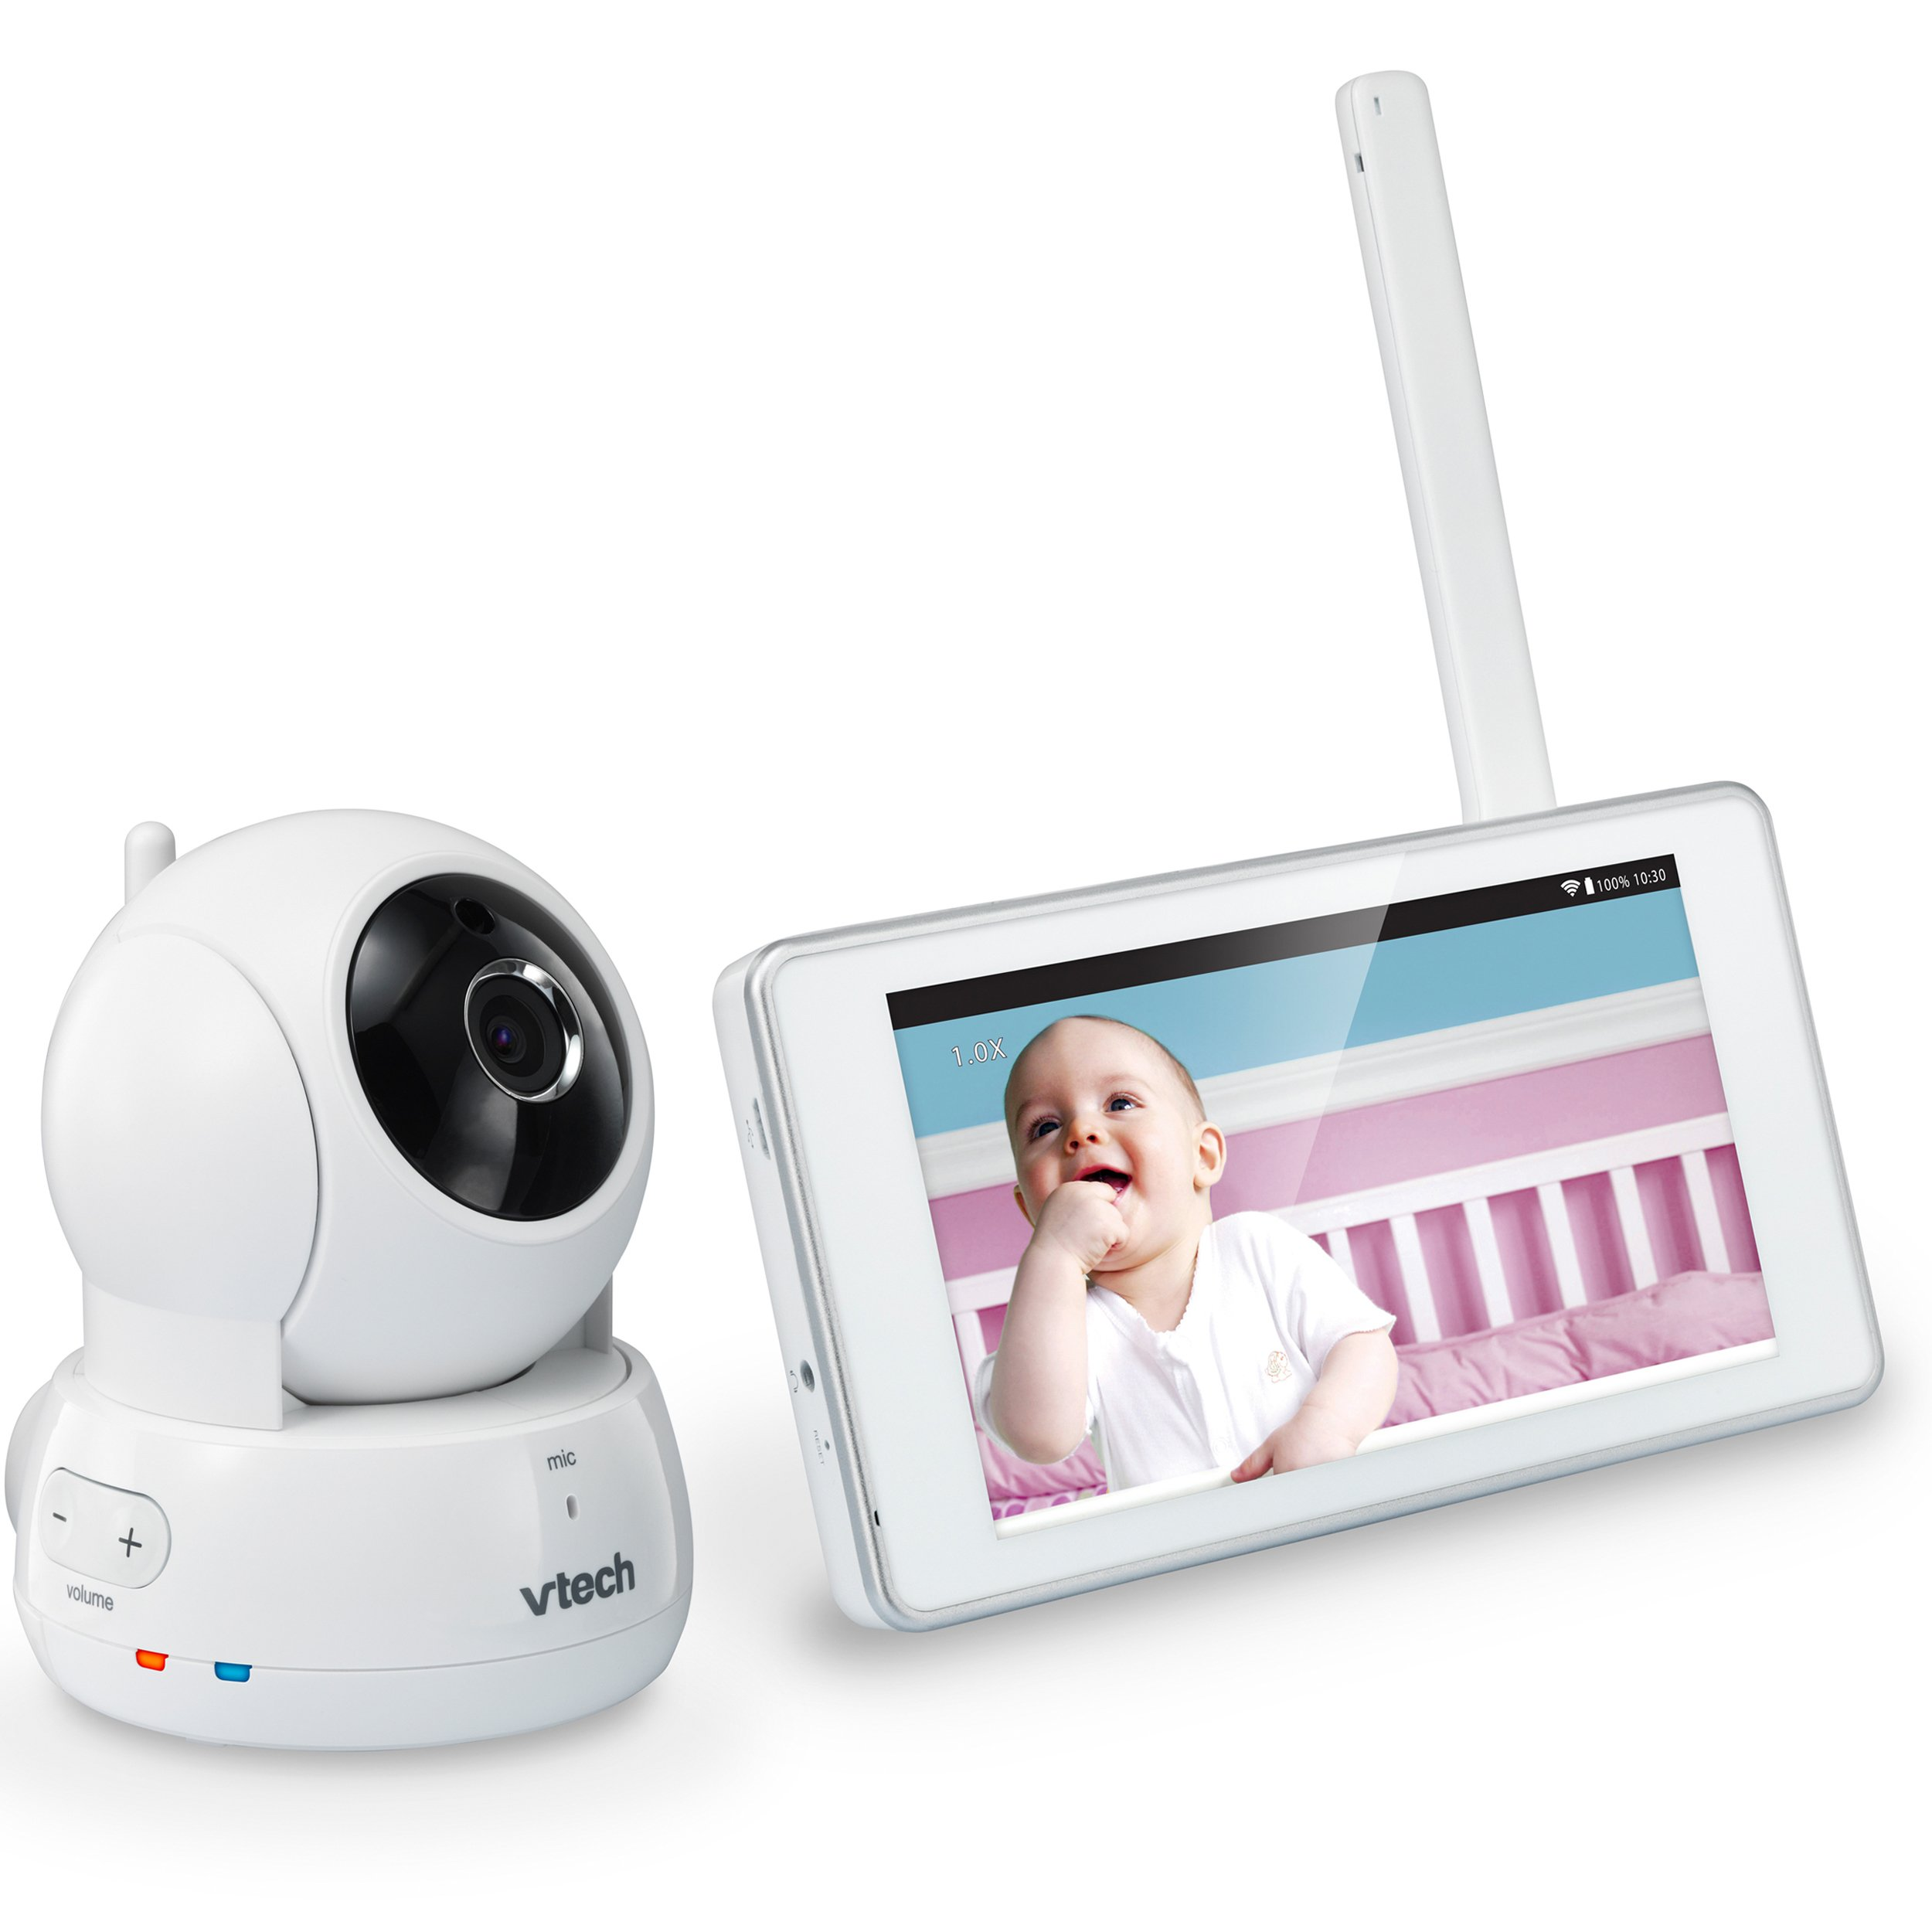 VTech VM991 Wireless WiFi Video Baby Monitor with Remote Access App, 5-inch Touch Screen, Remote Access Pan, Tilt & Zoom, Motion Alerts & Support for up to 10 Cameras by VTech (Image #1)